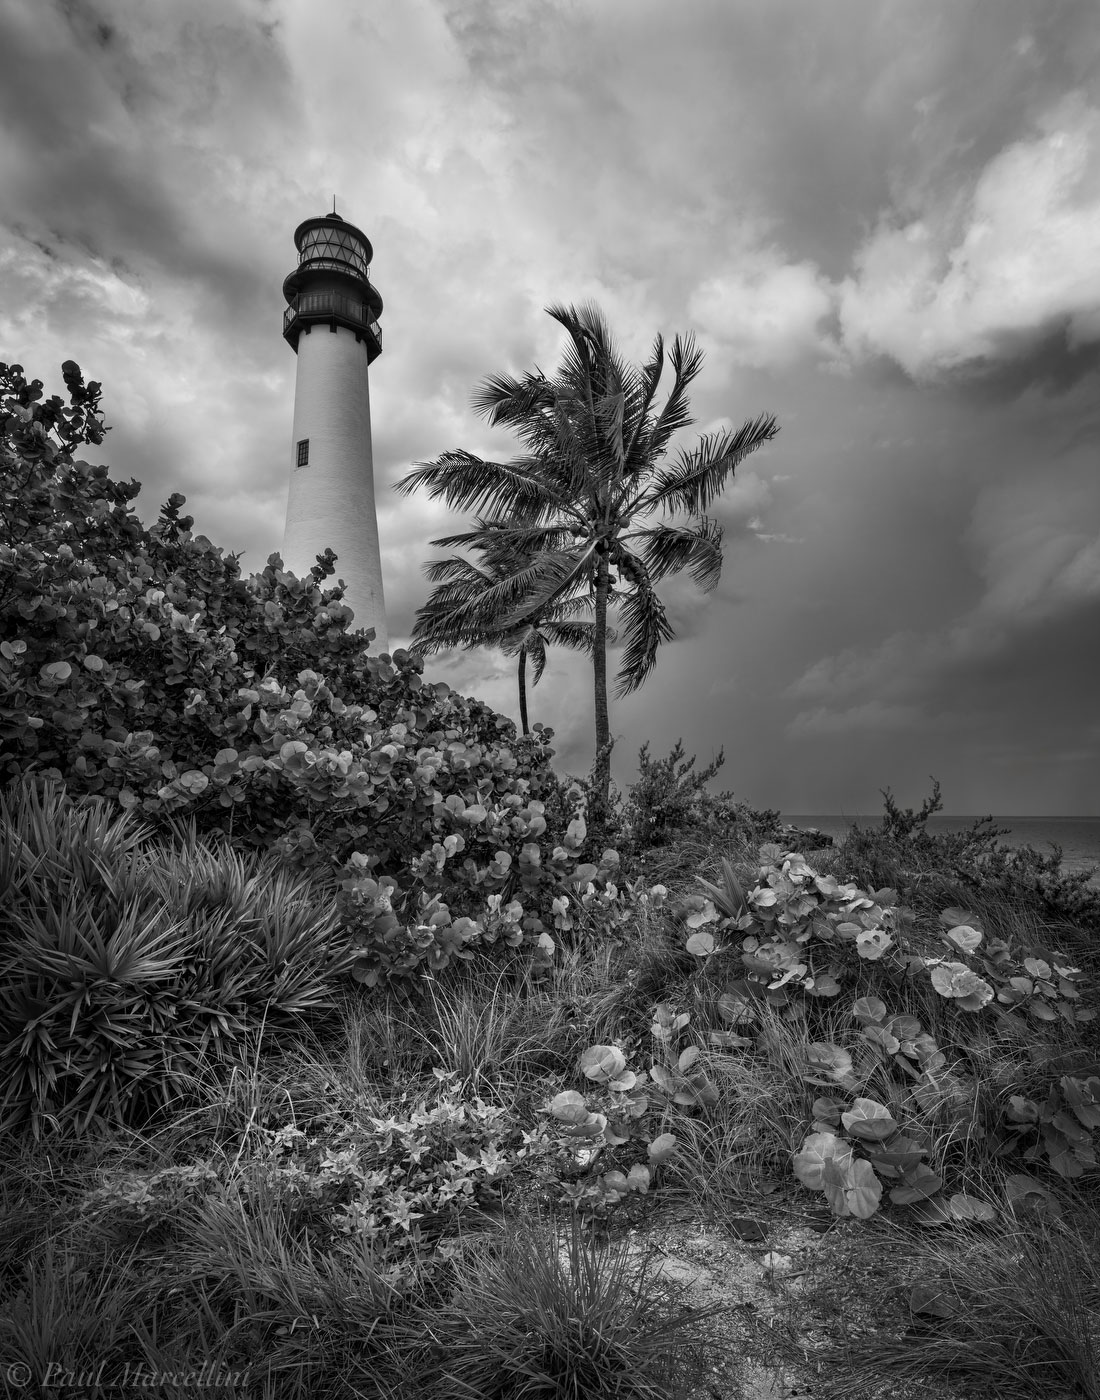 Bill Baggs Cape Florida State Park, lighthouse, key biscayne, storm, florida, nature, photography, photo